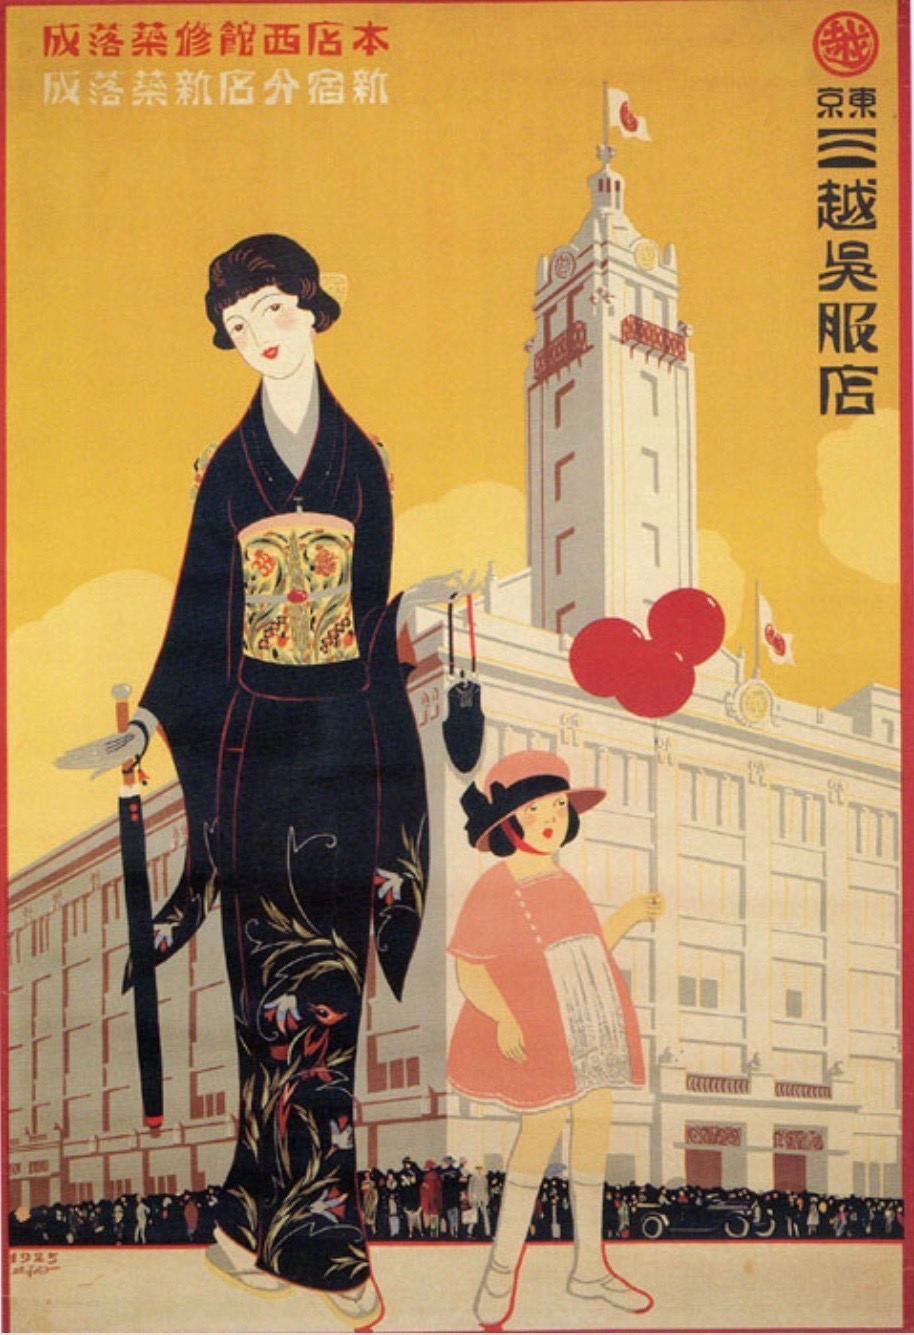 illustrative poster of a mother and child walking across a bustling city square